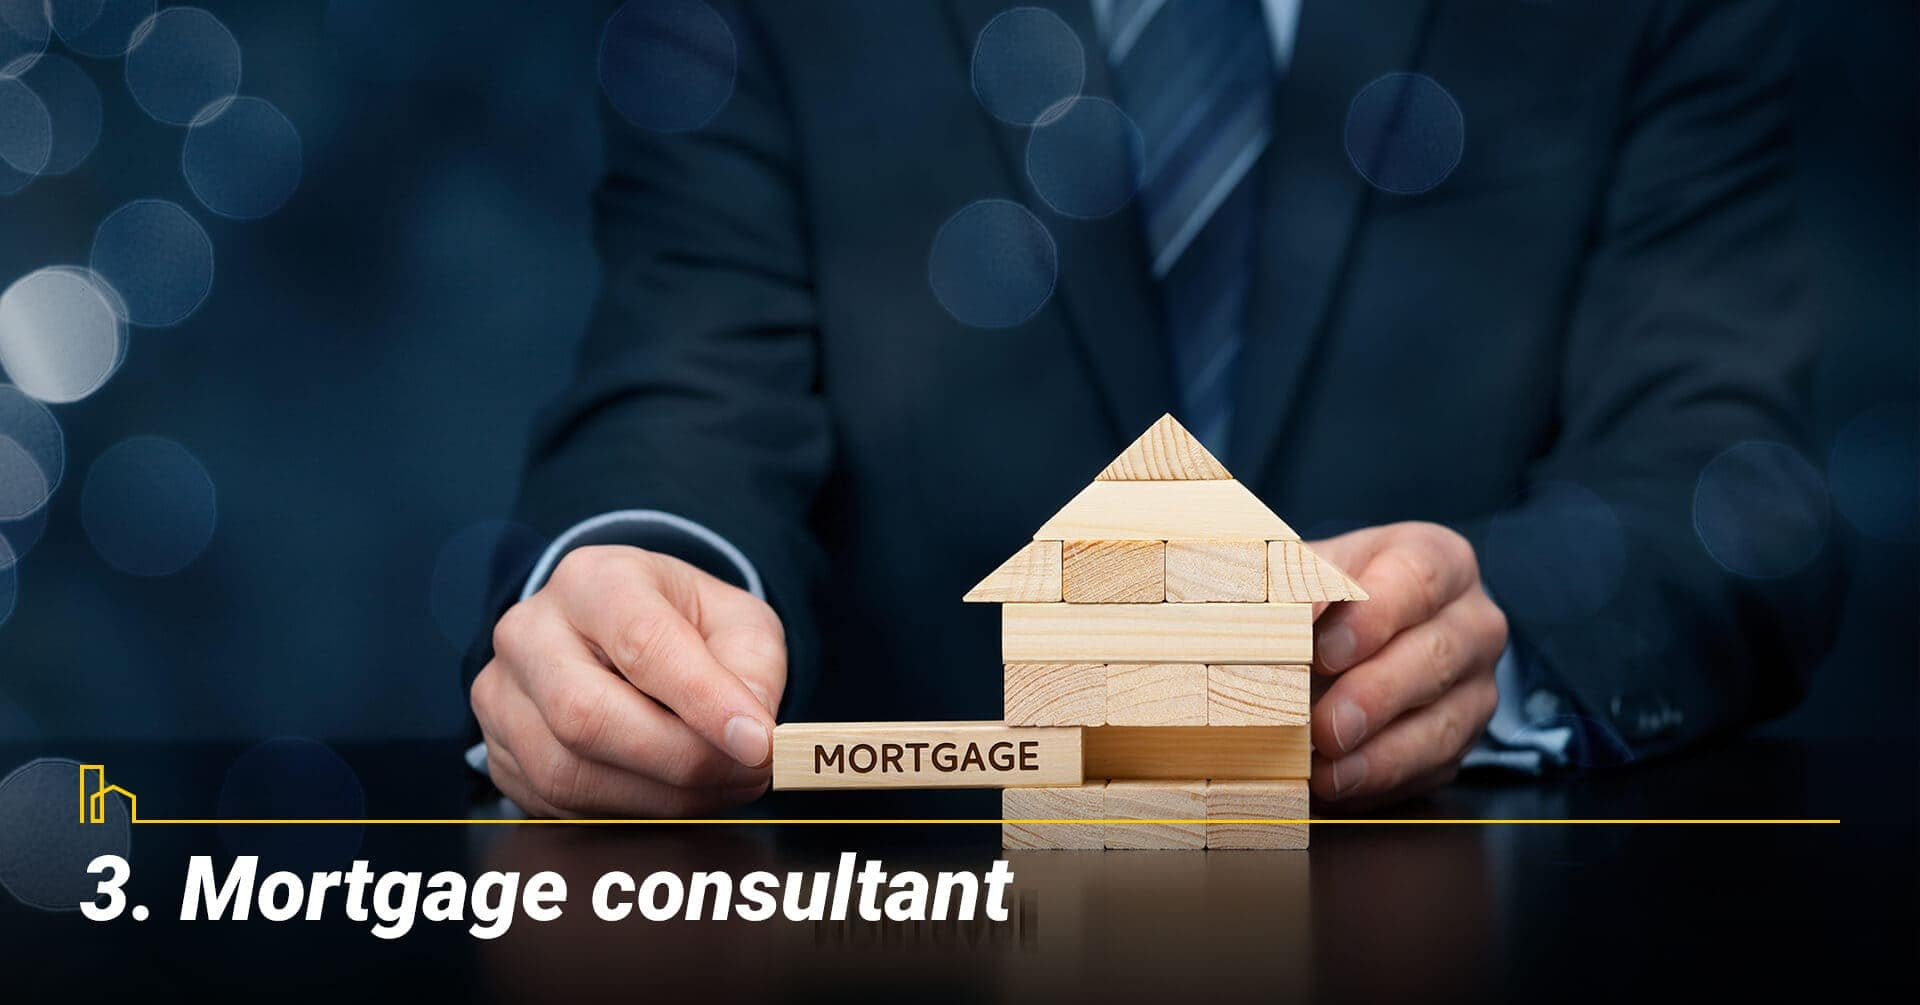 Mortgage consultant, Consult with your mortgage advisor